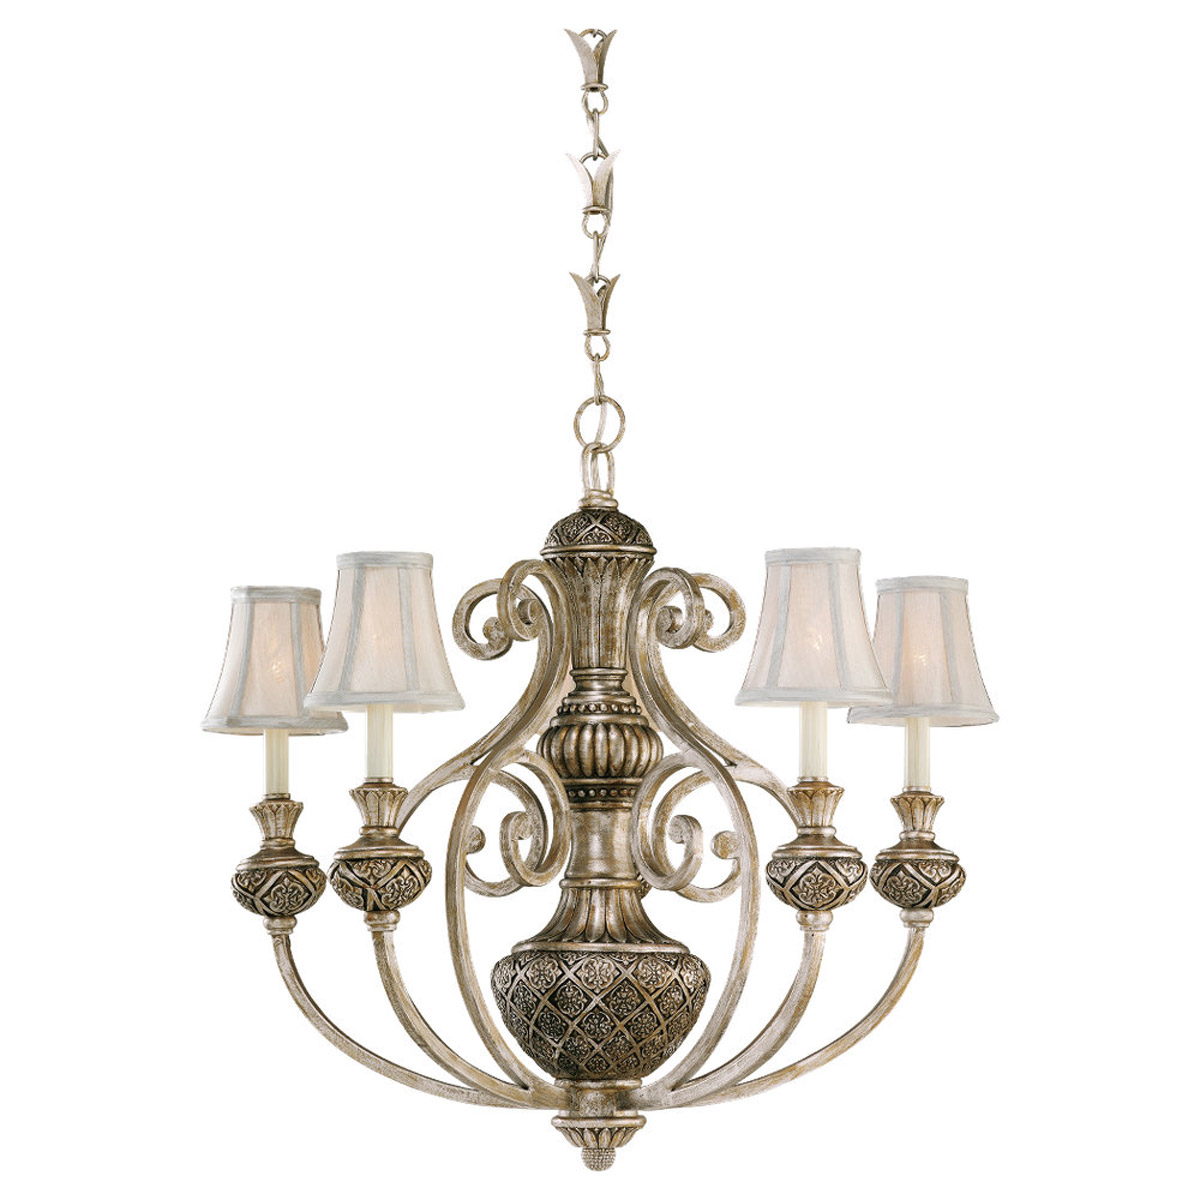 Sea Gull Lighting Highlands 5 Light Chandelier in Palladium 31251-824 photo